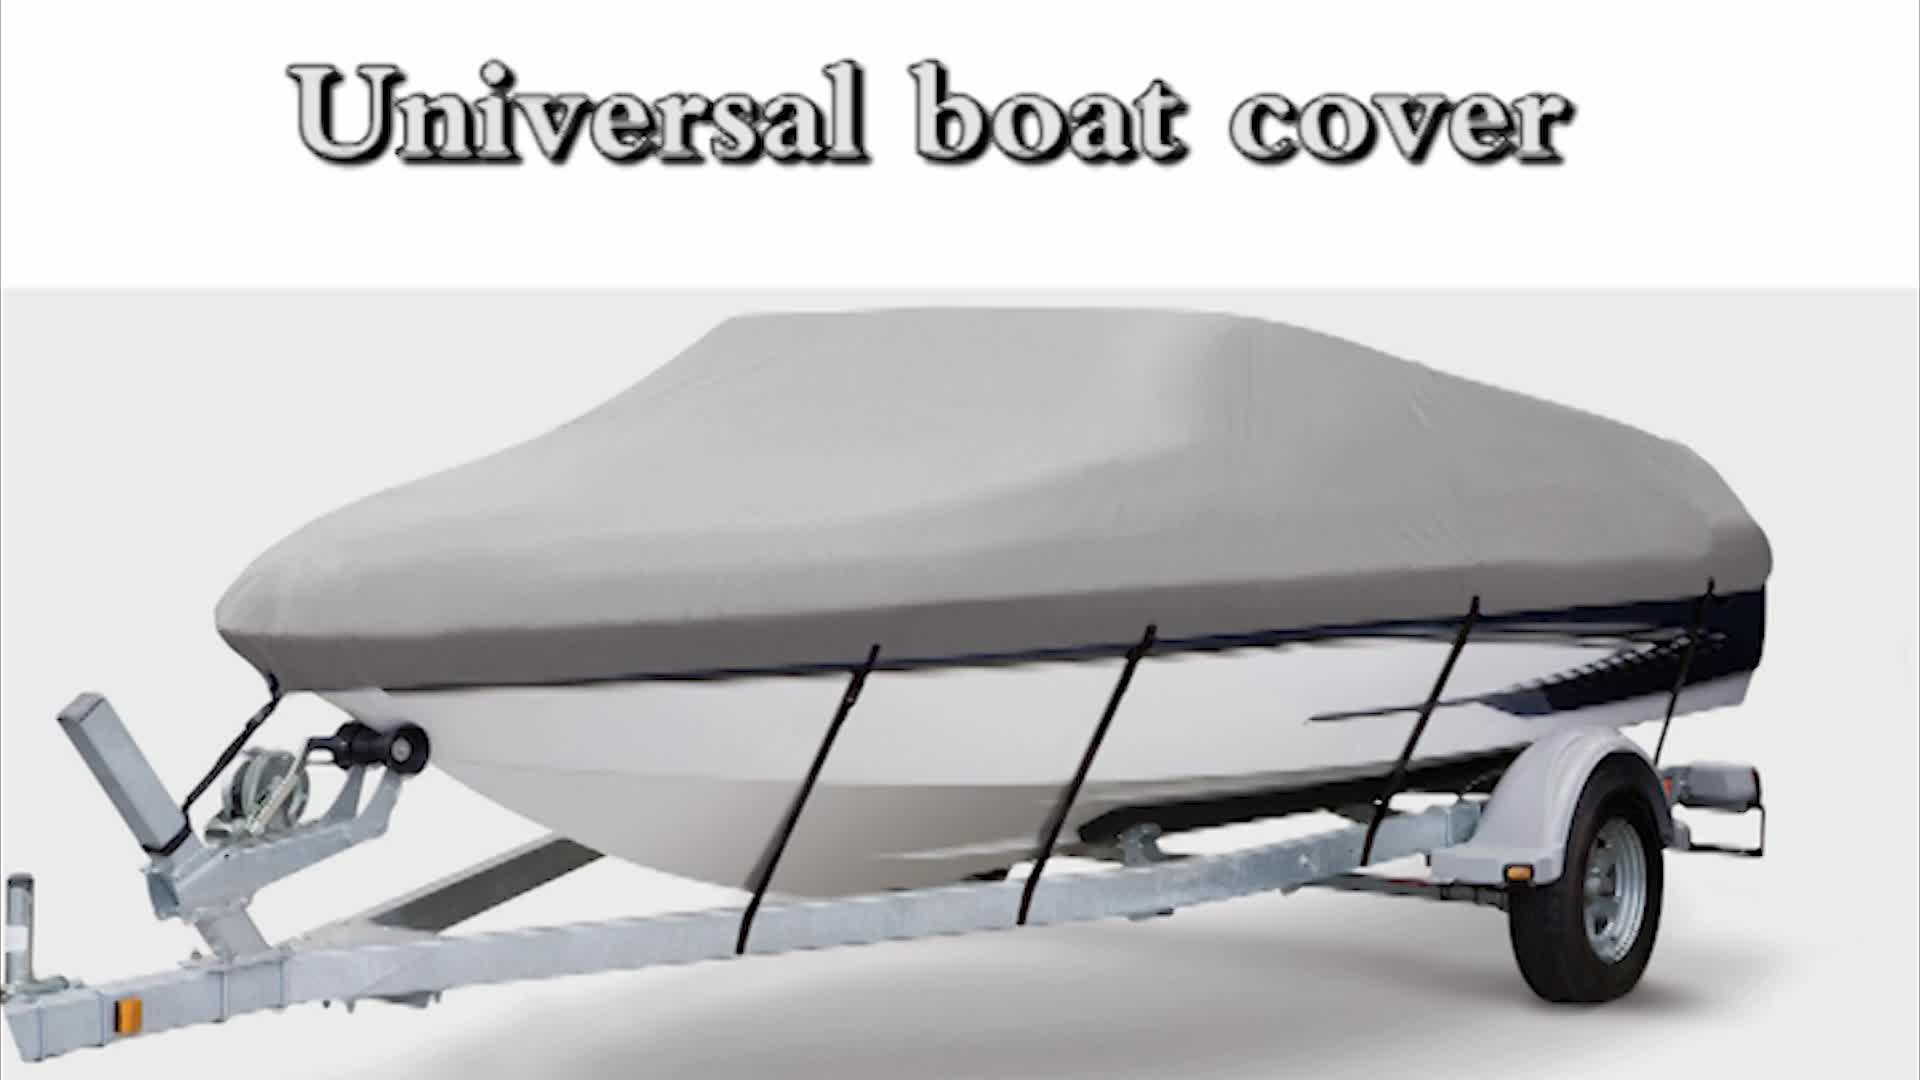 Inventory I style boat cover high quality Marine parts waterproof boat cover